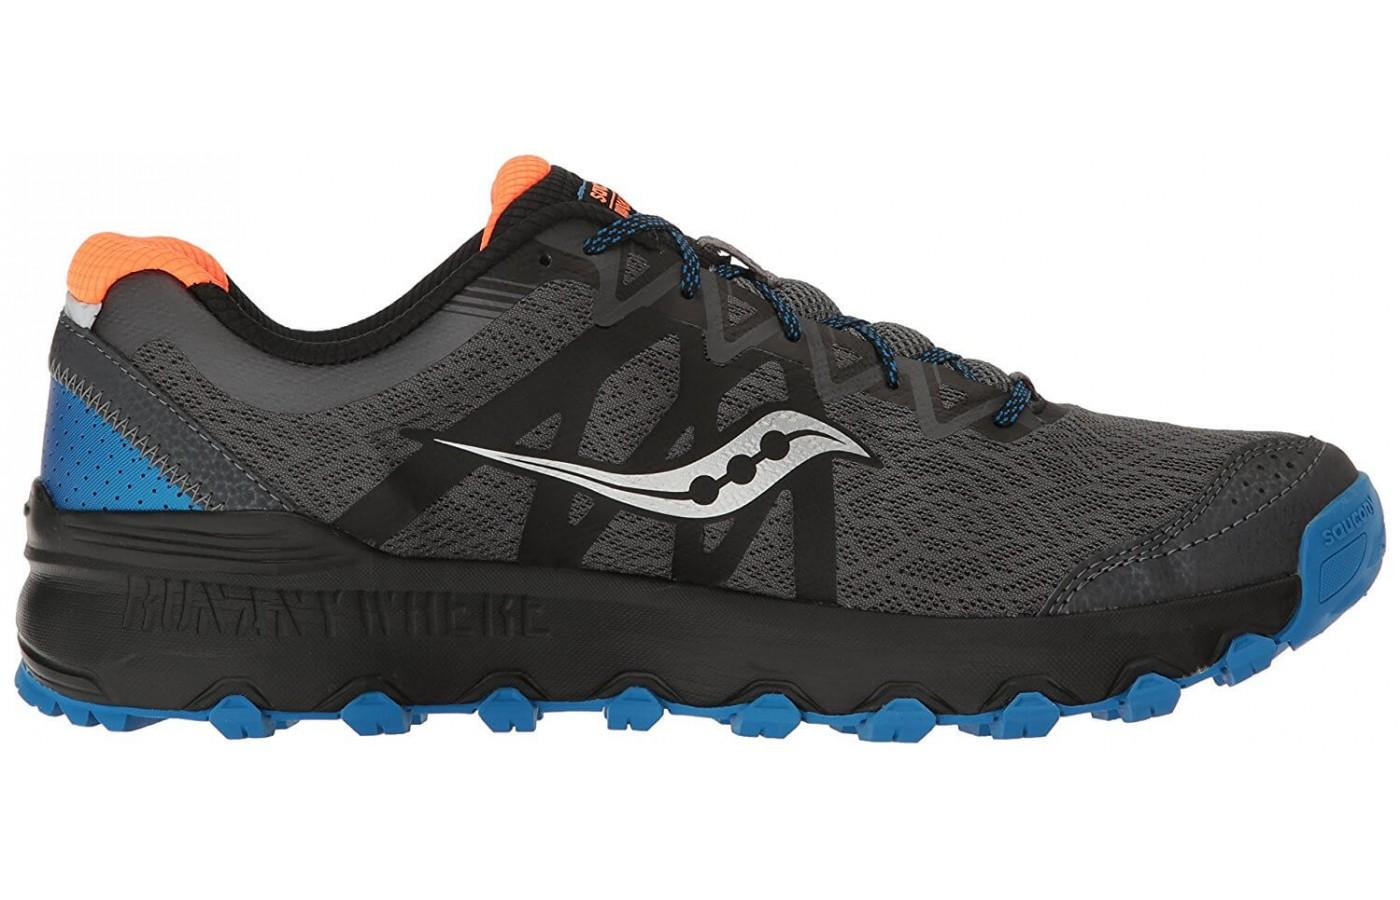 Runners love the rugged look and classic colors offered in this shoe.